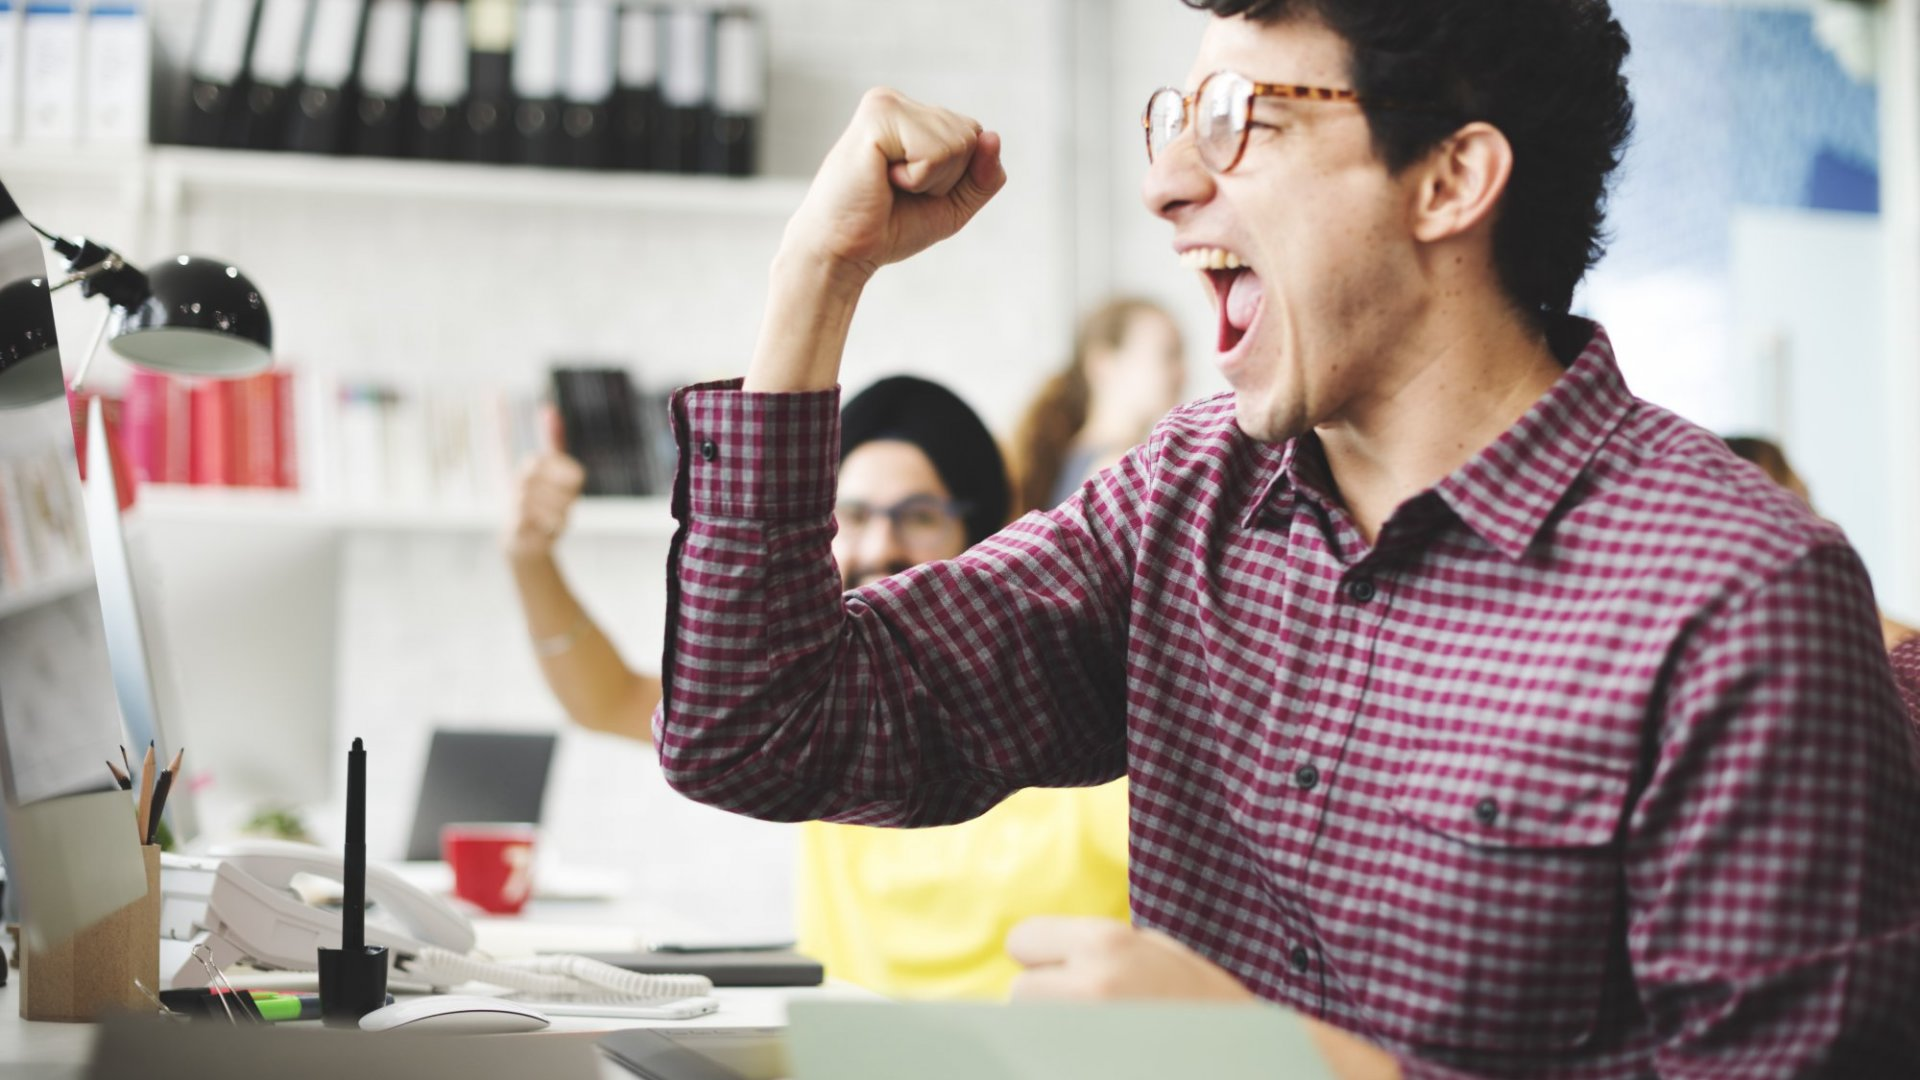 Employees Are Happiest When Work Offers 2 Things (Hint: It's Not More Money or Work-Life Balance)